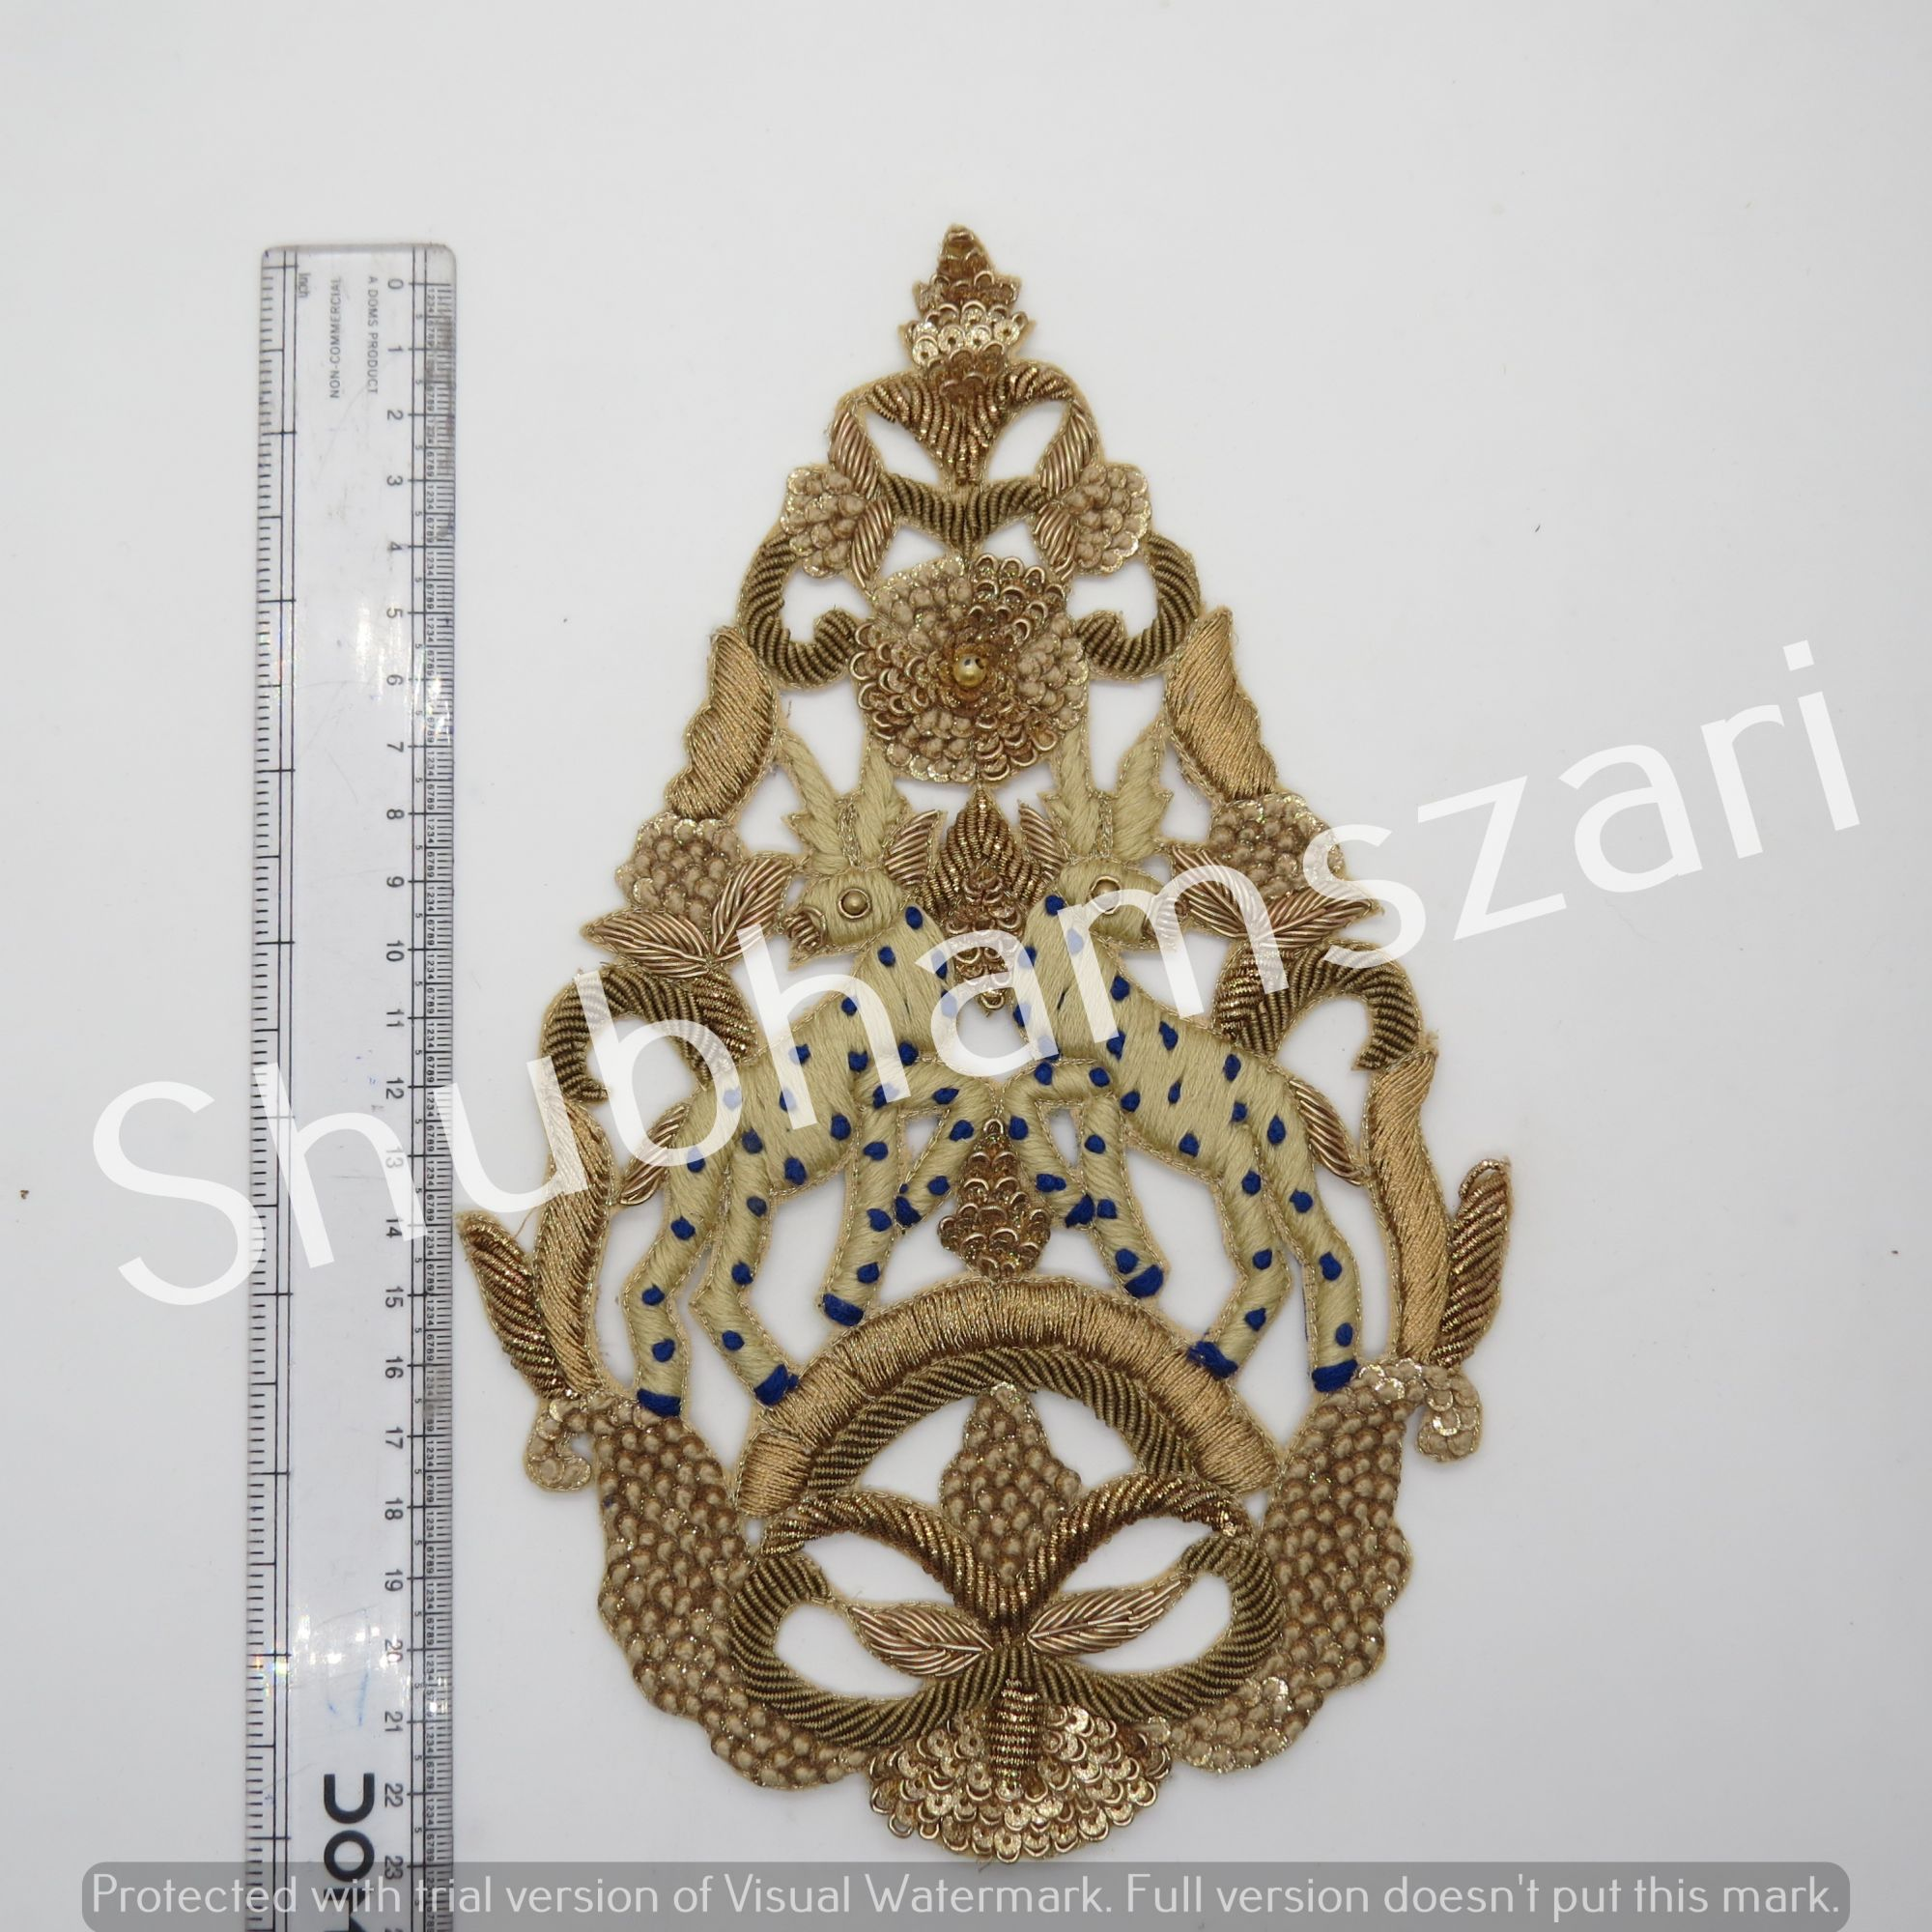 Floral Neck Patch, Gold Zardozi Applique, Kurta Applique, Neckline Patch, Neckline Embellishment with Sequins, Lace Neckline Applique Buty motif